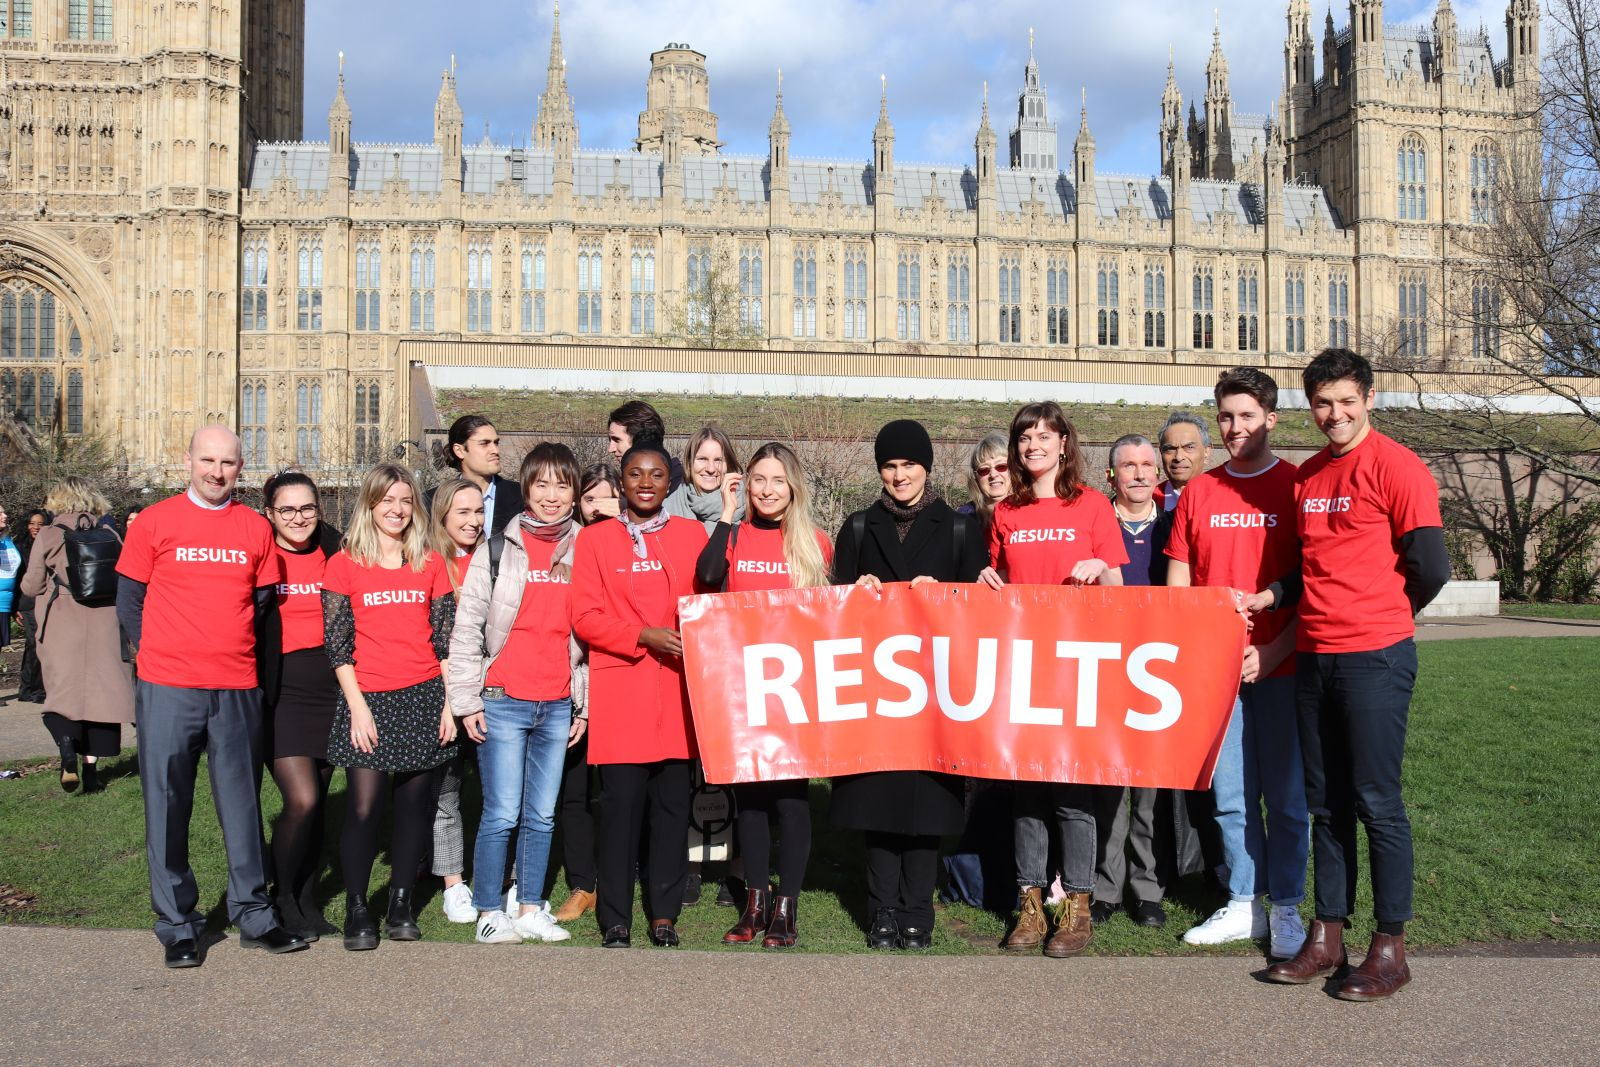 RESULTS advocates stand with banner outside the Houses of Parliament